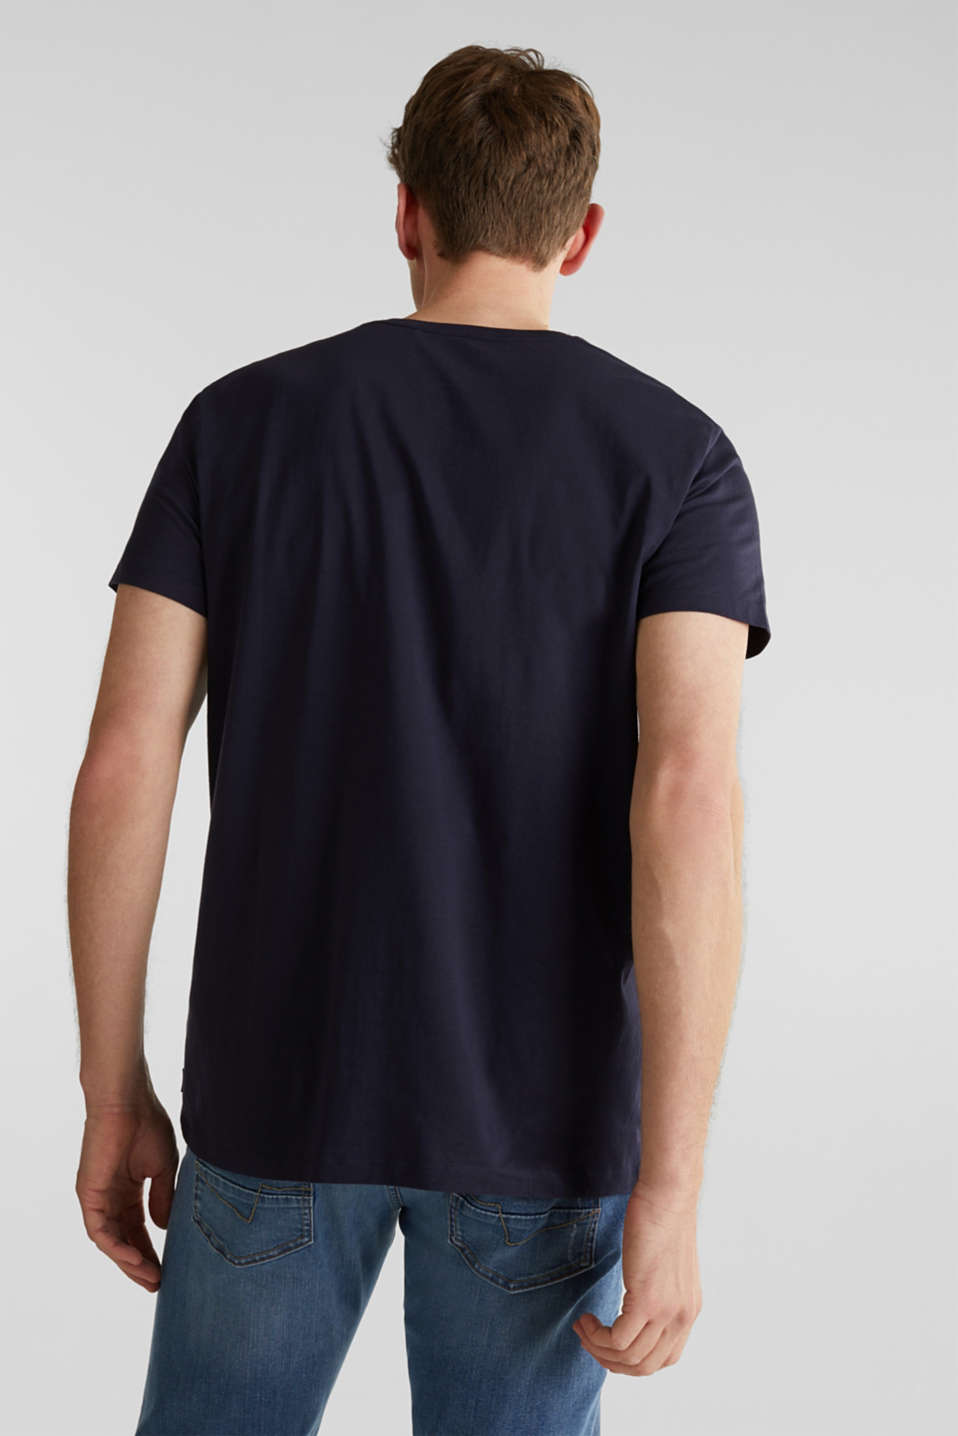 Jersey T-shirt with a bandana print, 100% cotton, NAVY, detail image number 3